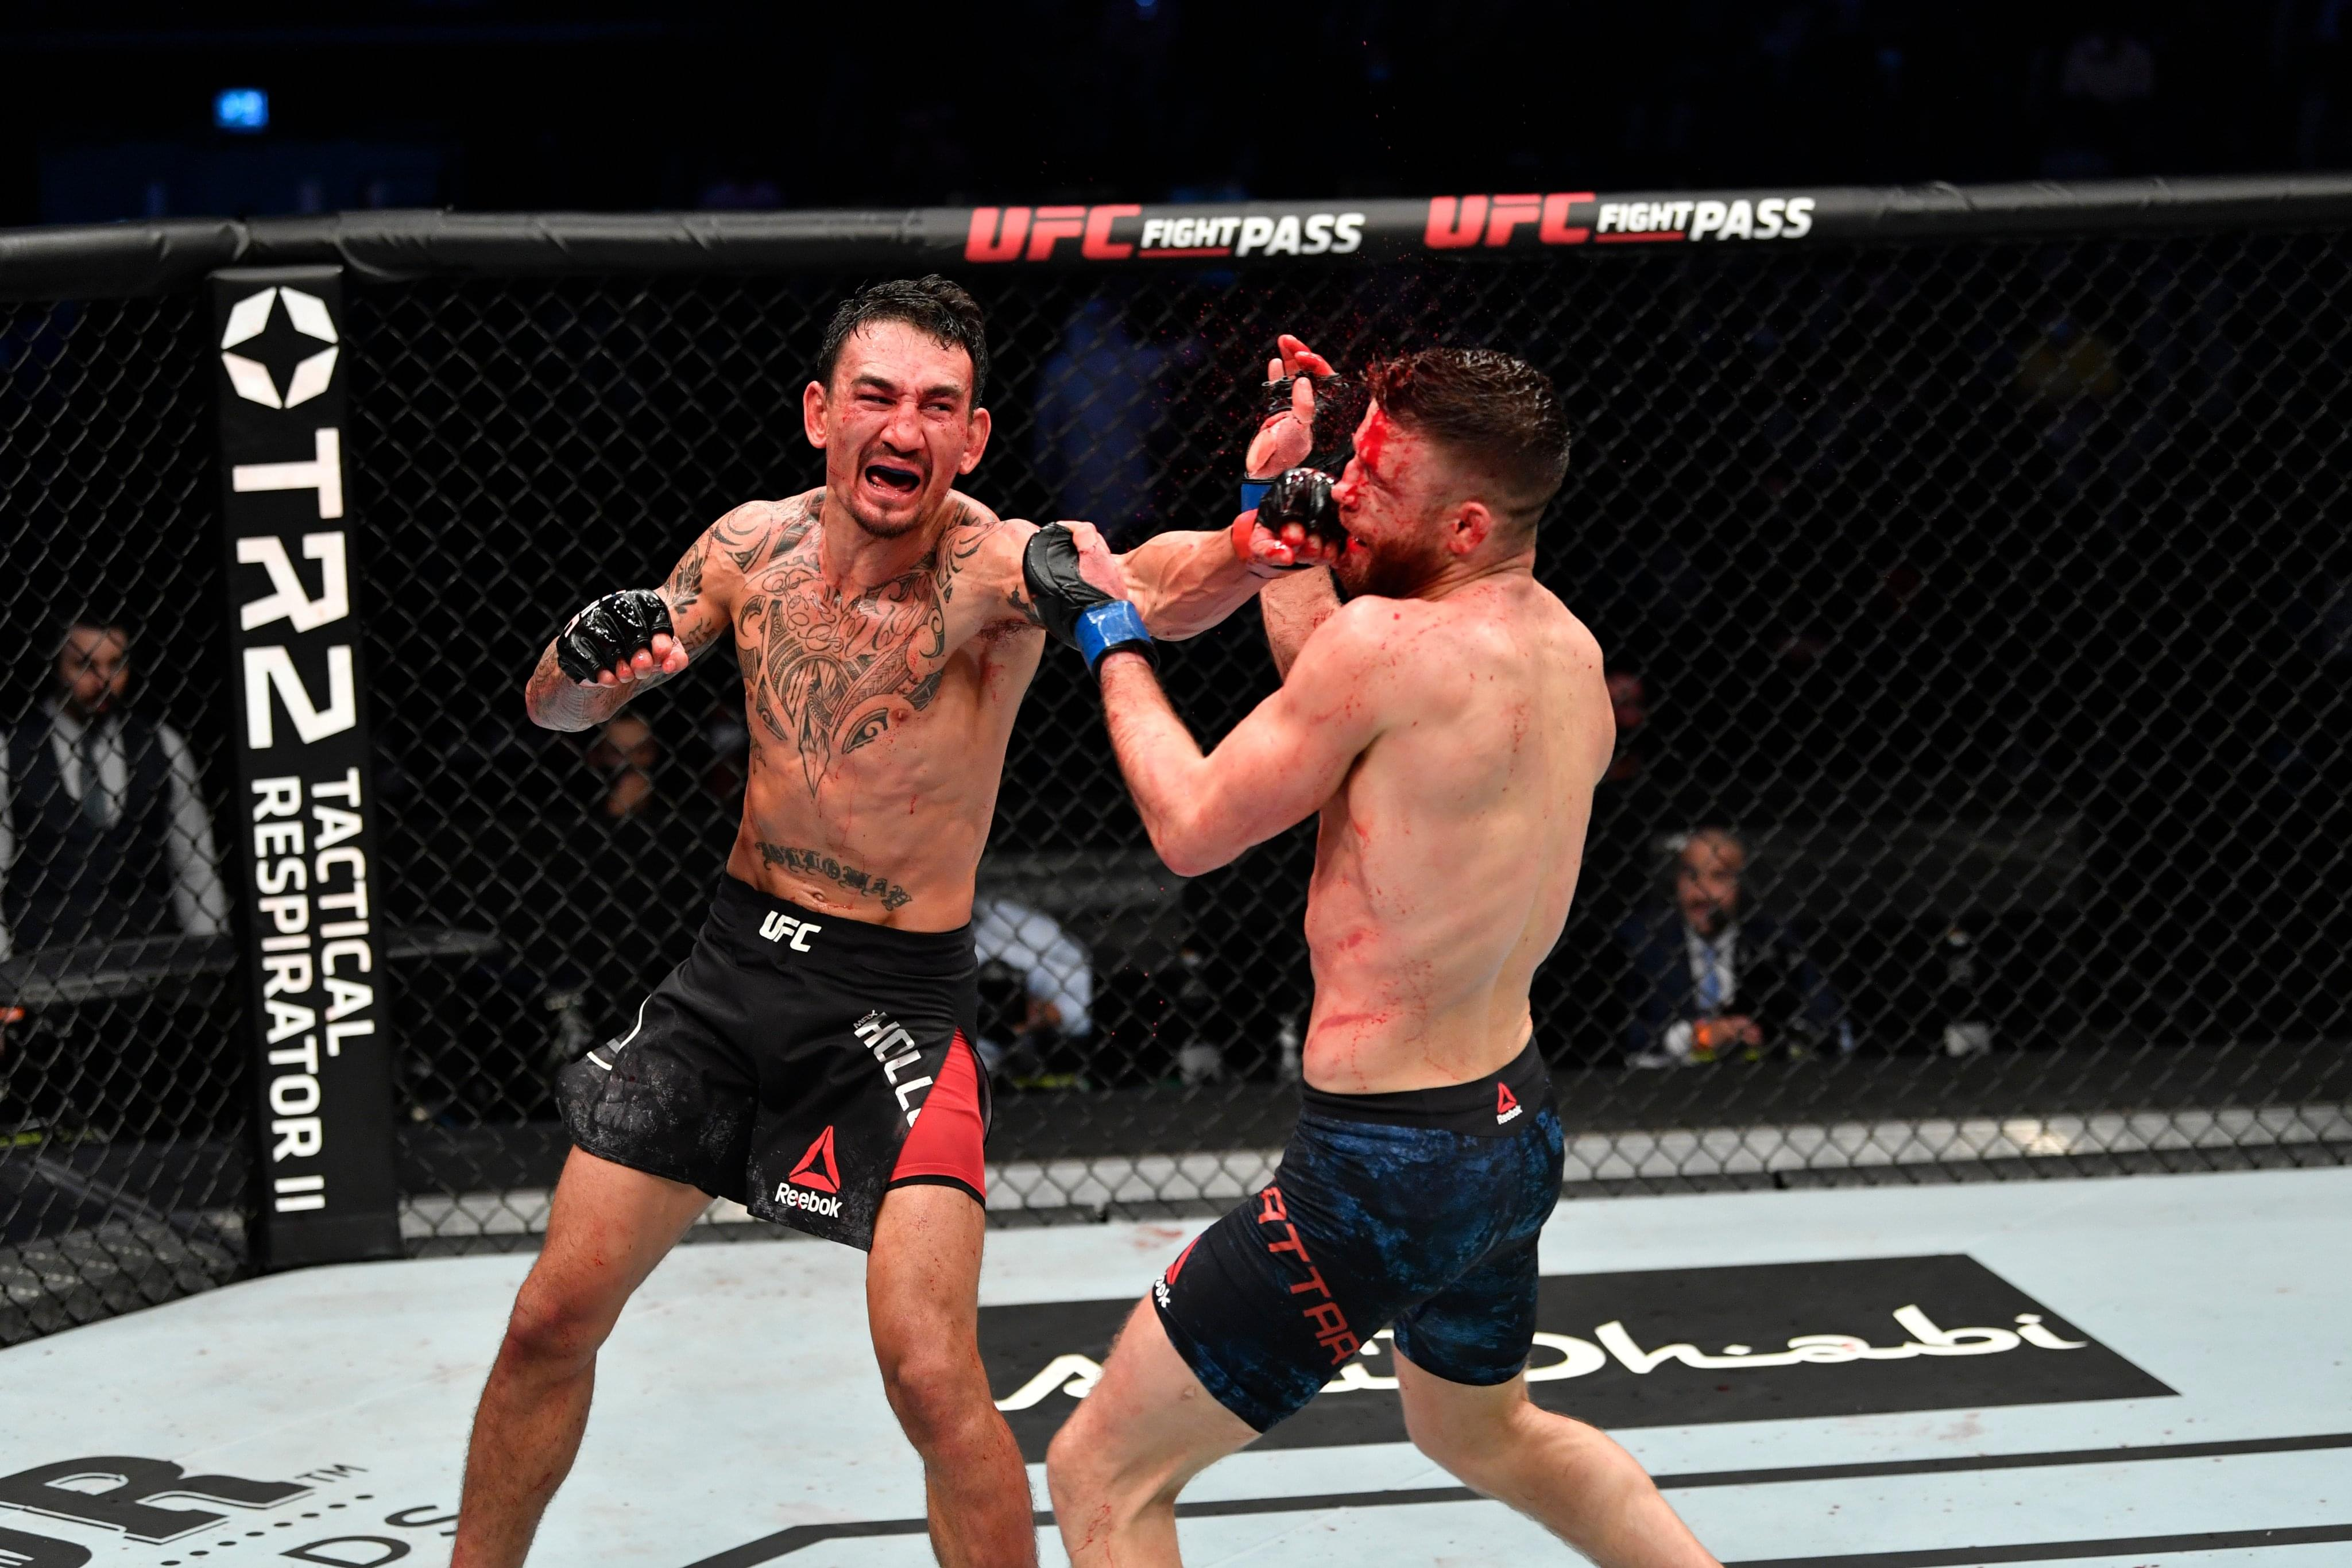 Local athletes and more react to Holloway's dominant performance